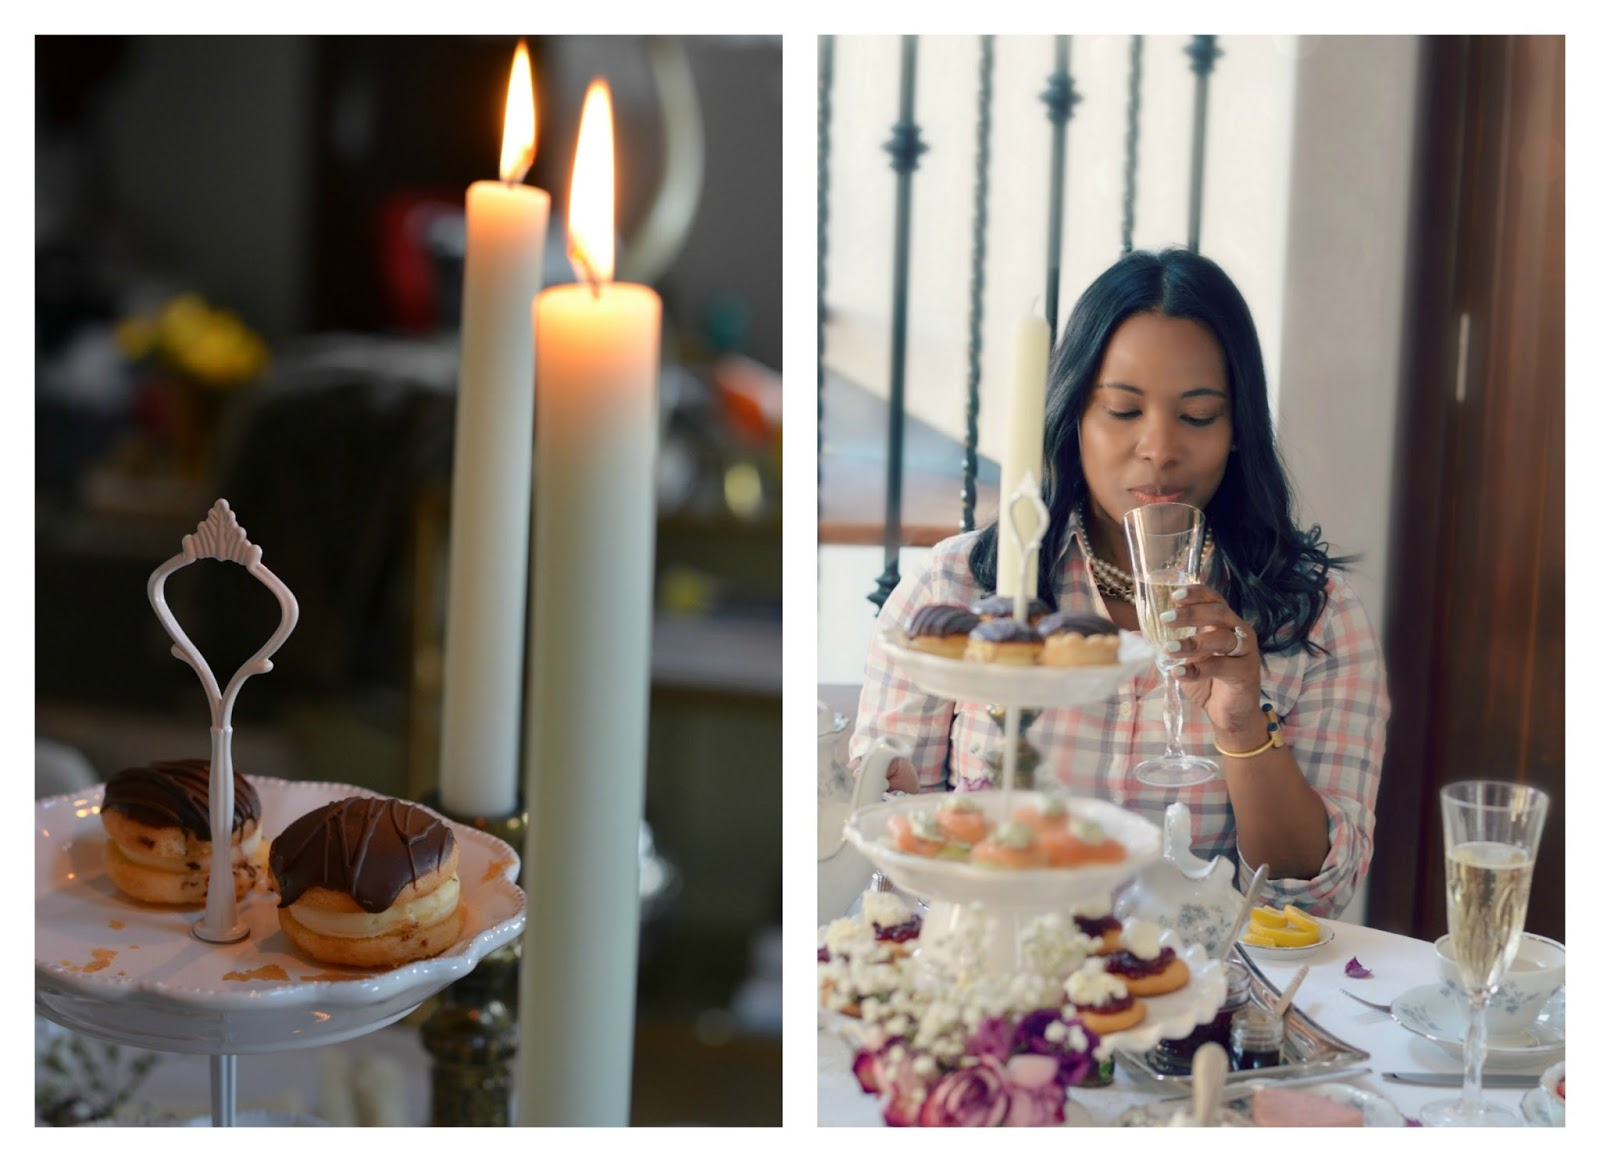 3 Simple How-To Tips for Hosting A Champagne Afternoon High Tea + Veuve Clicquot